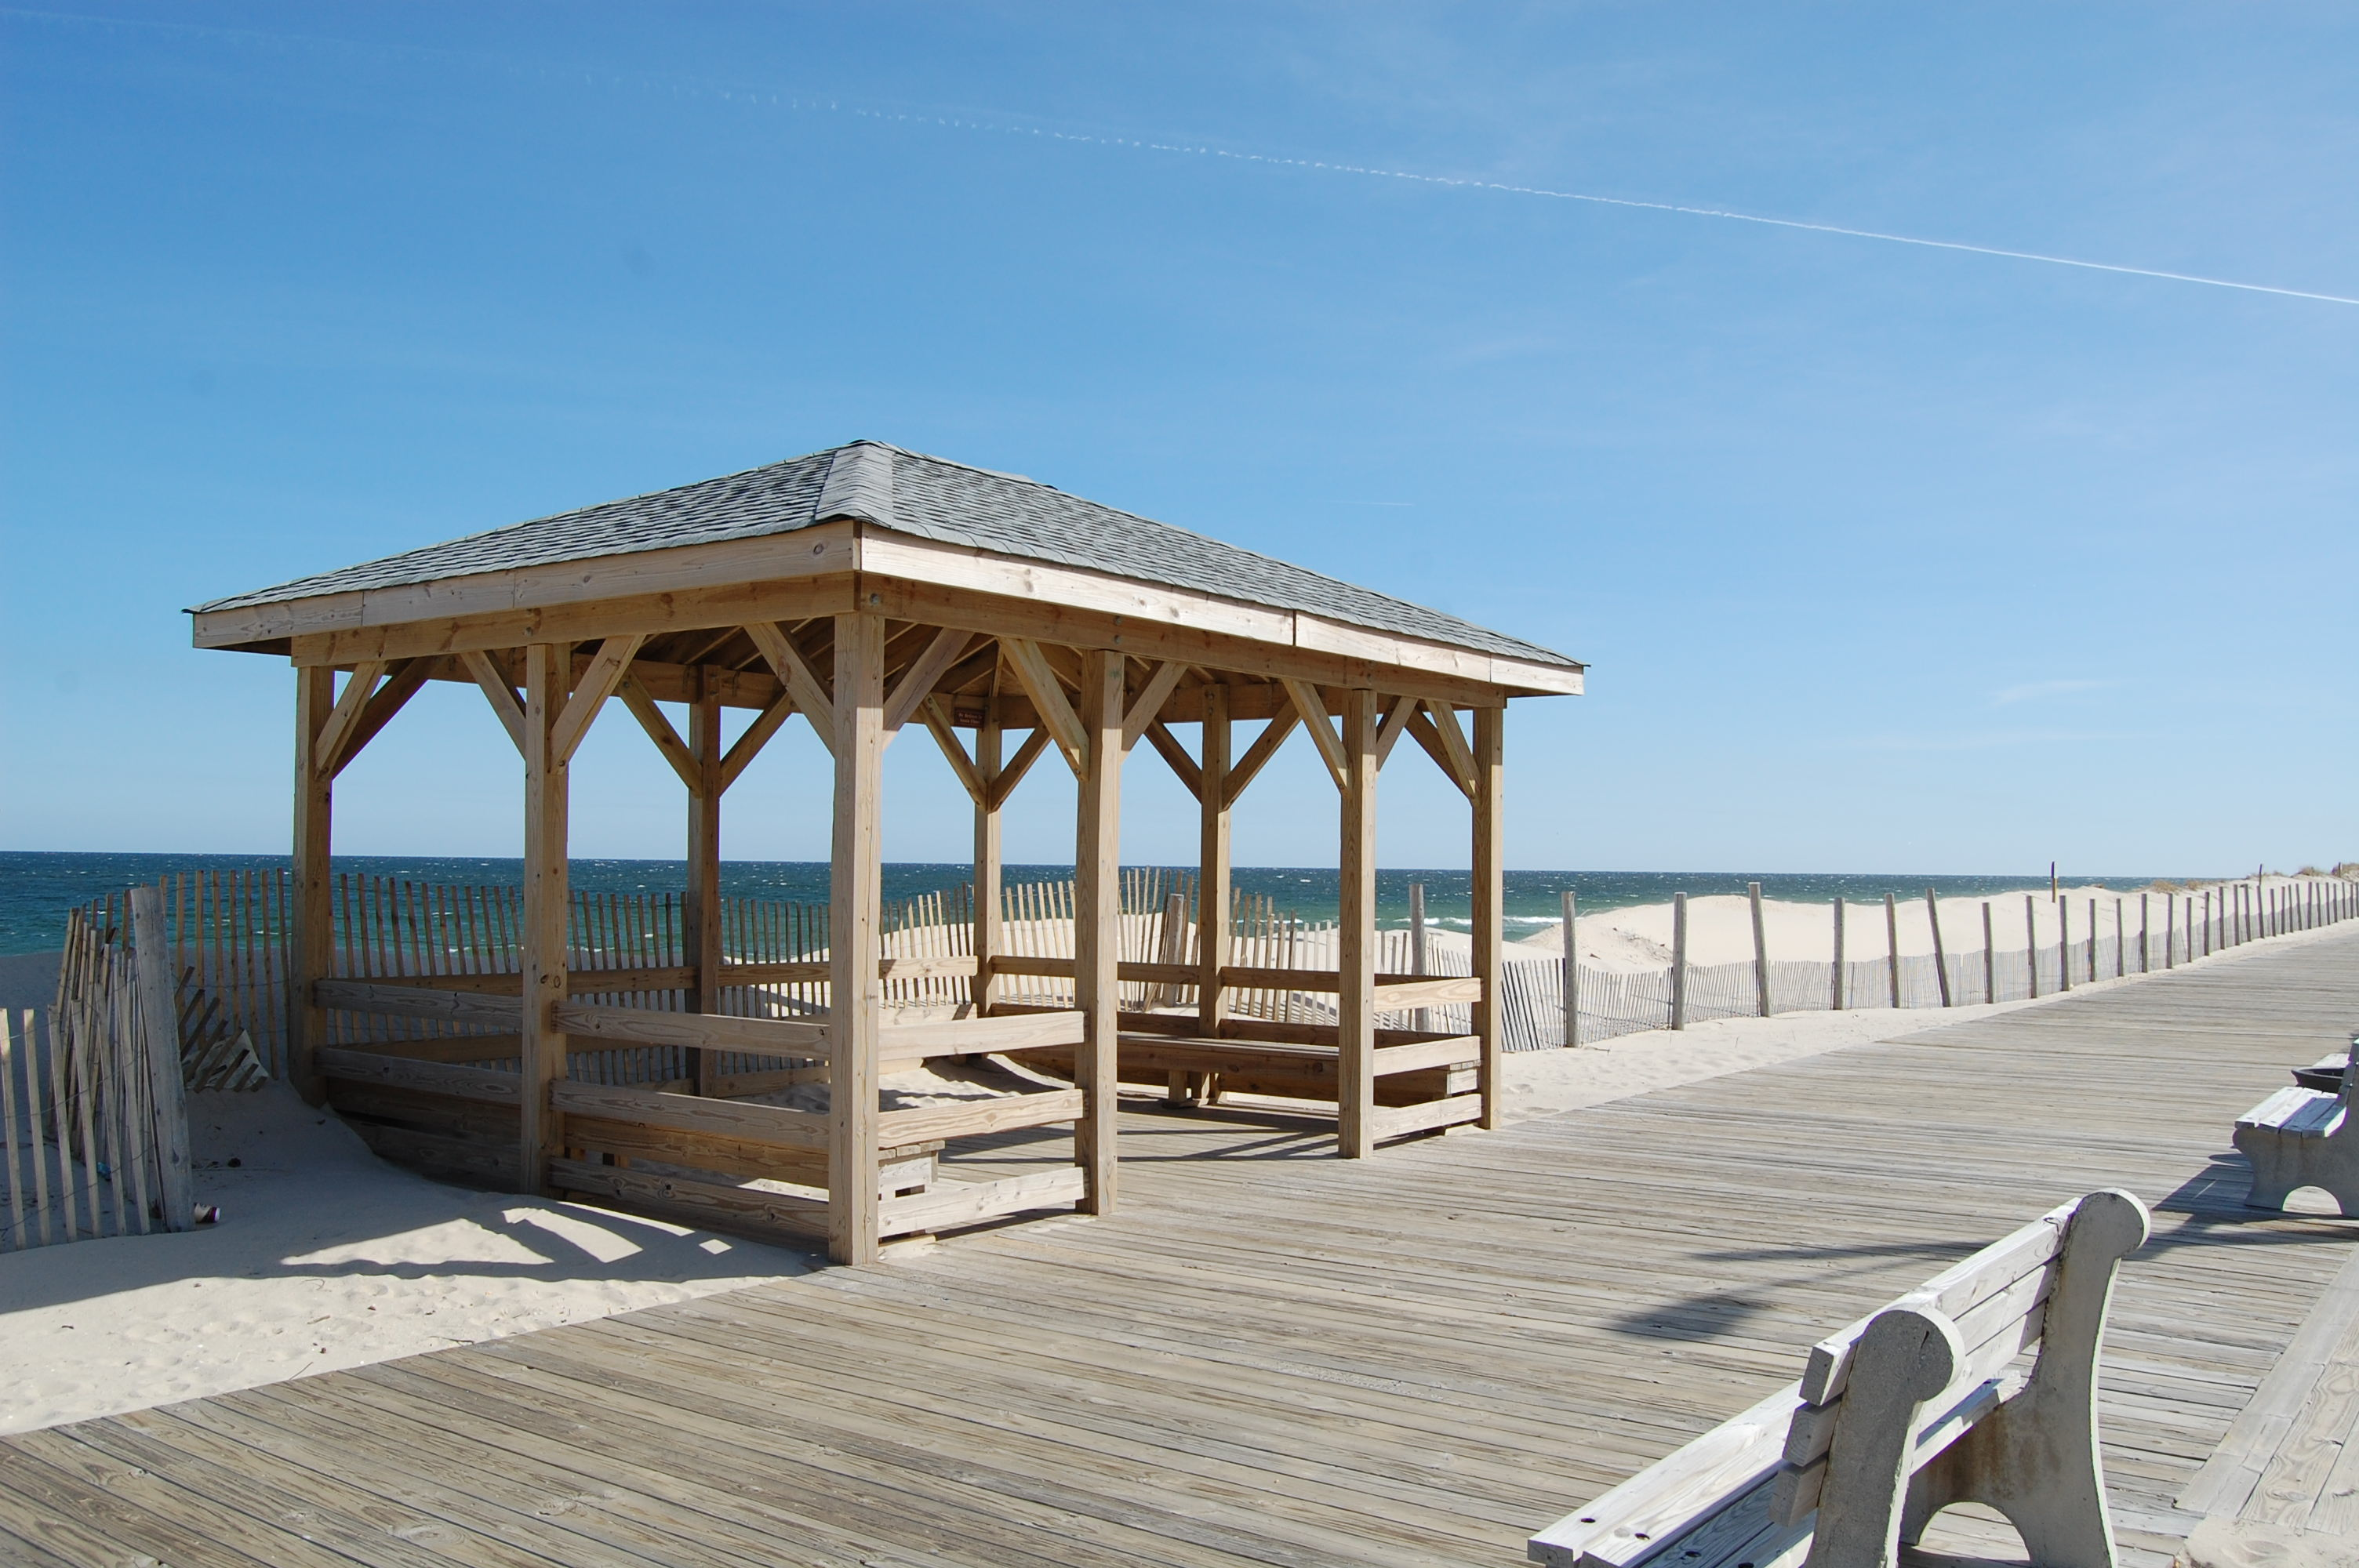 Benches and a gazebo along the Lavallette boardwalk. (Photo: Daniel Nee)